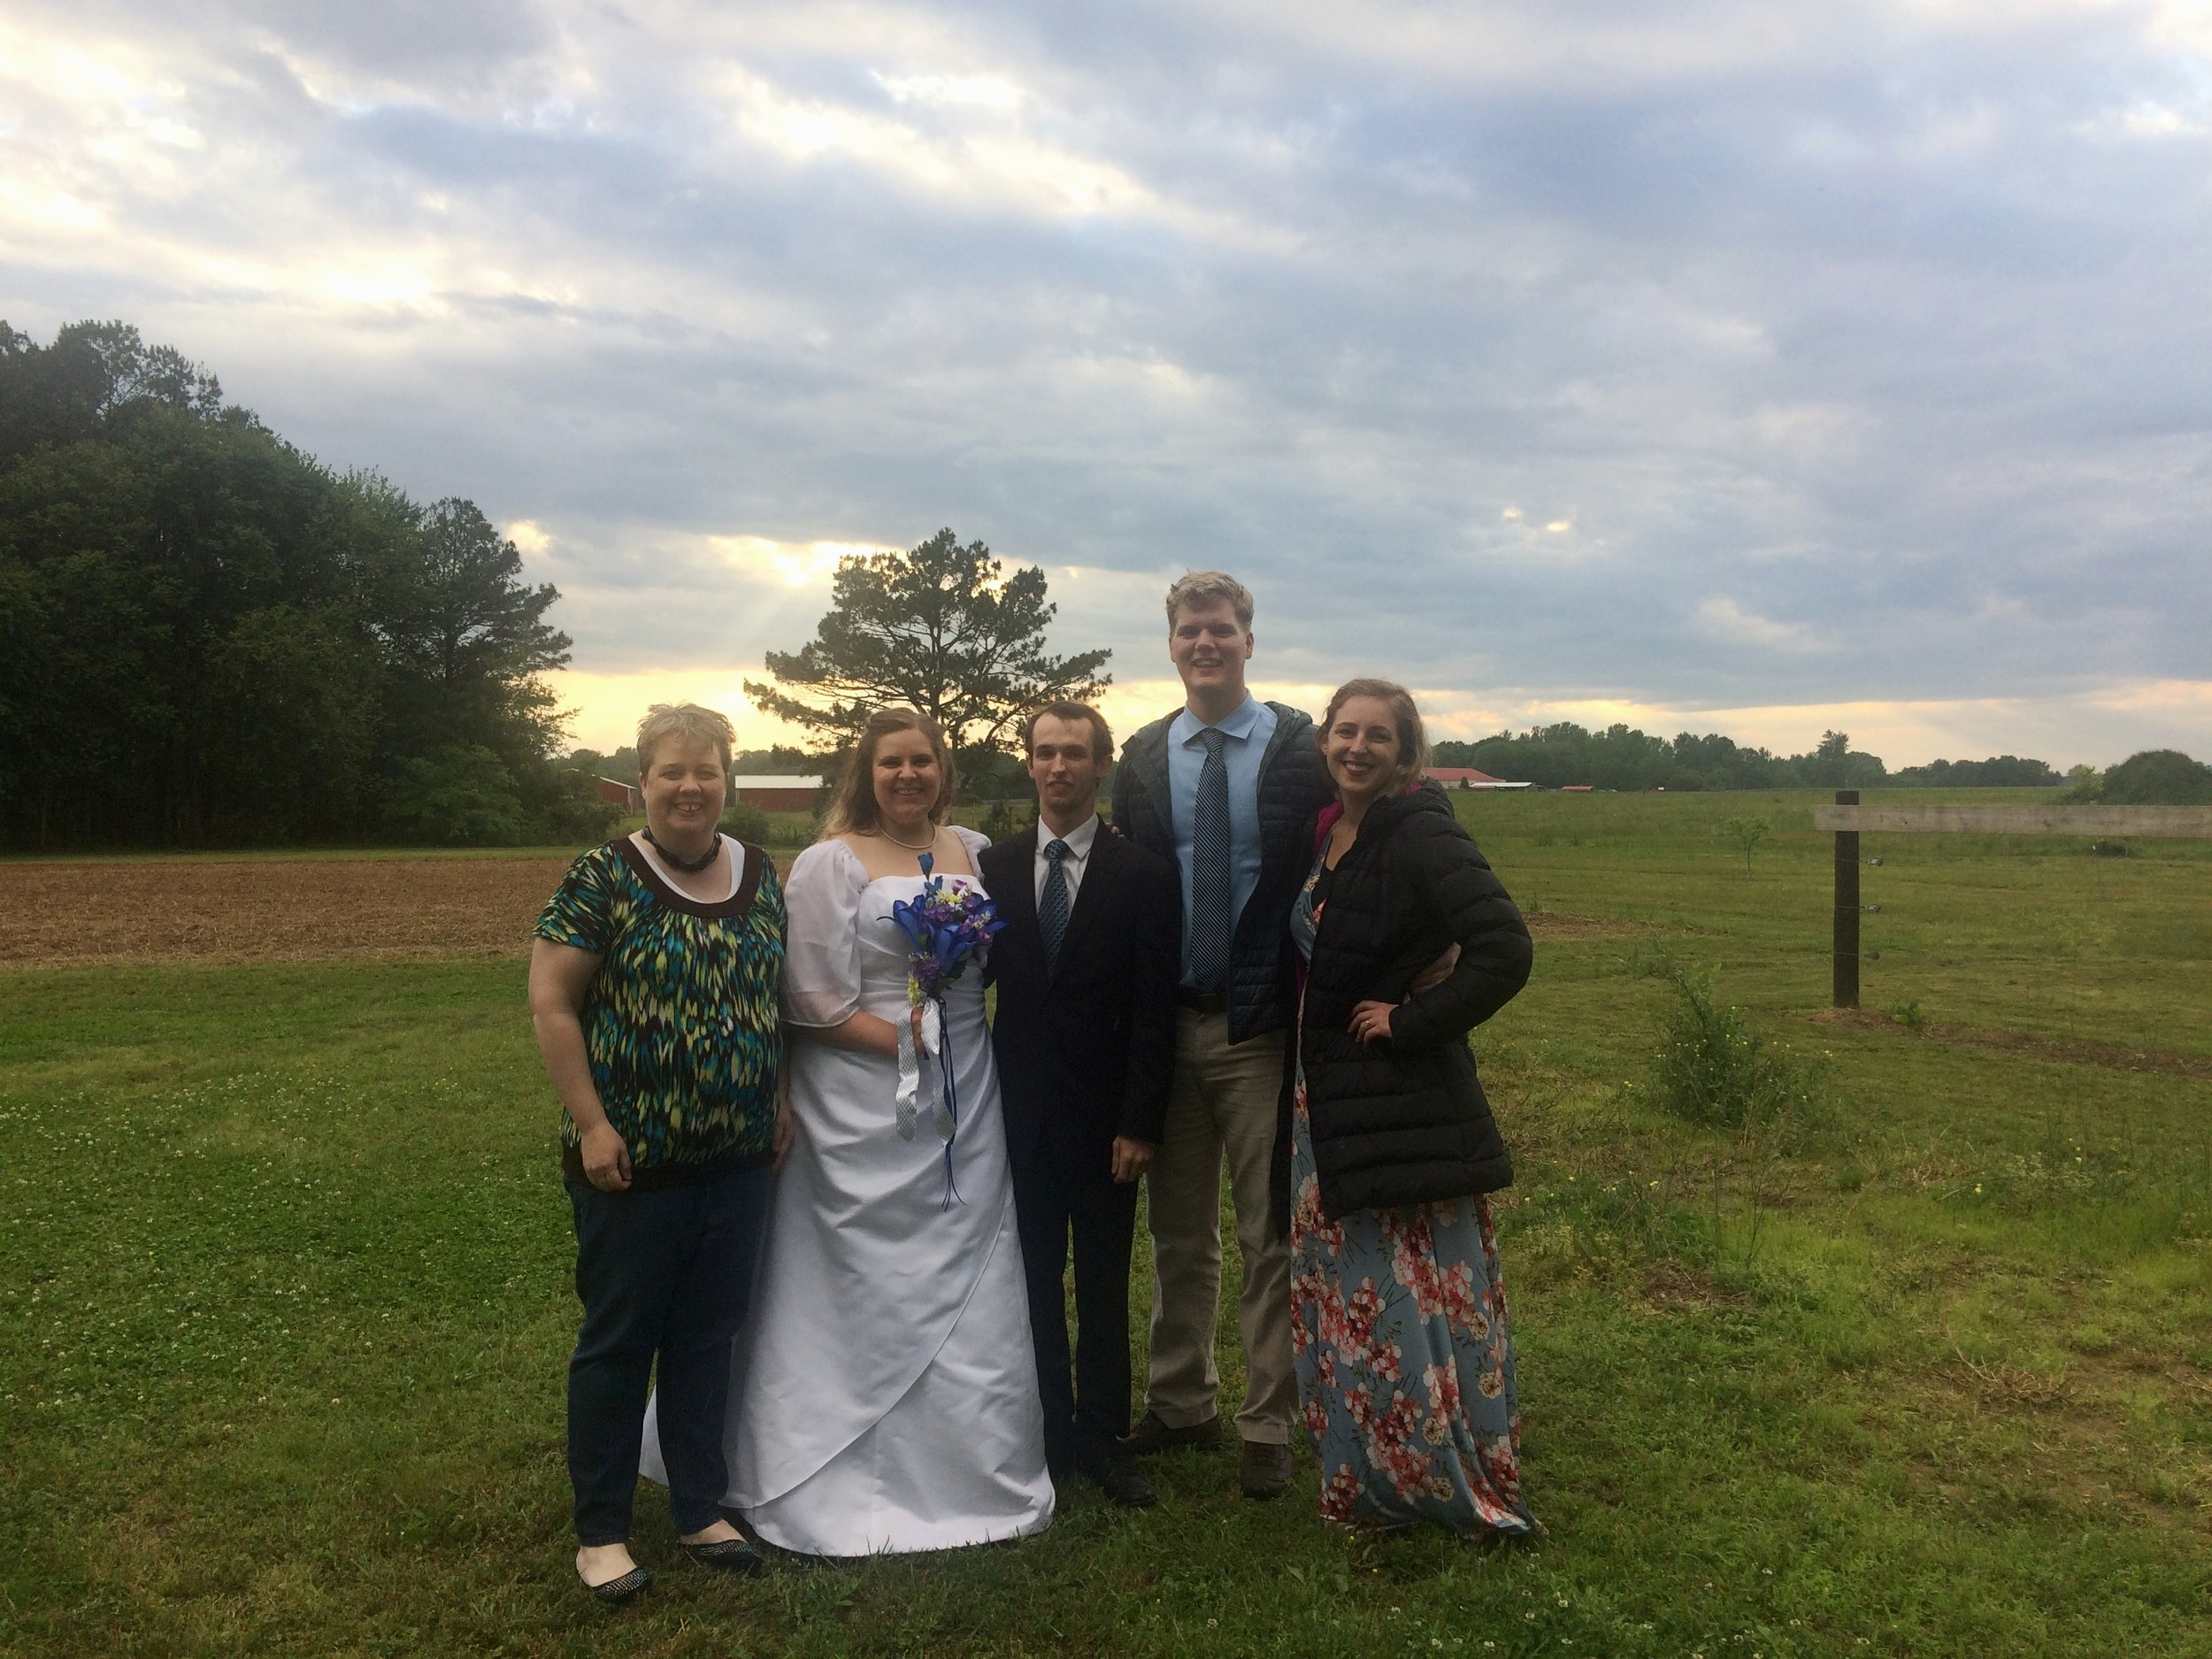 went to Alabama for a wedding...